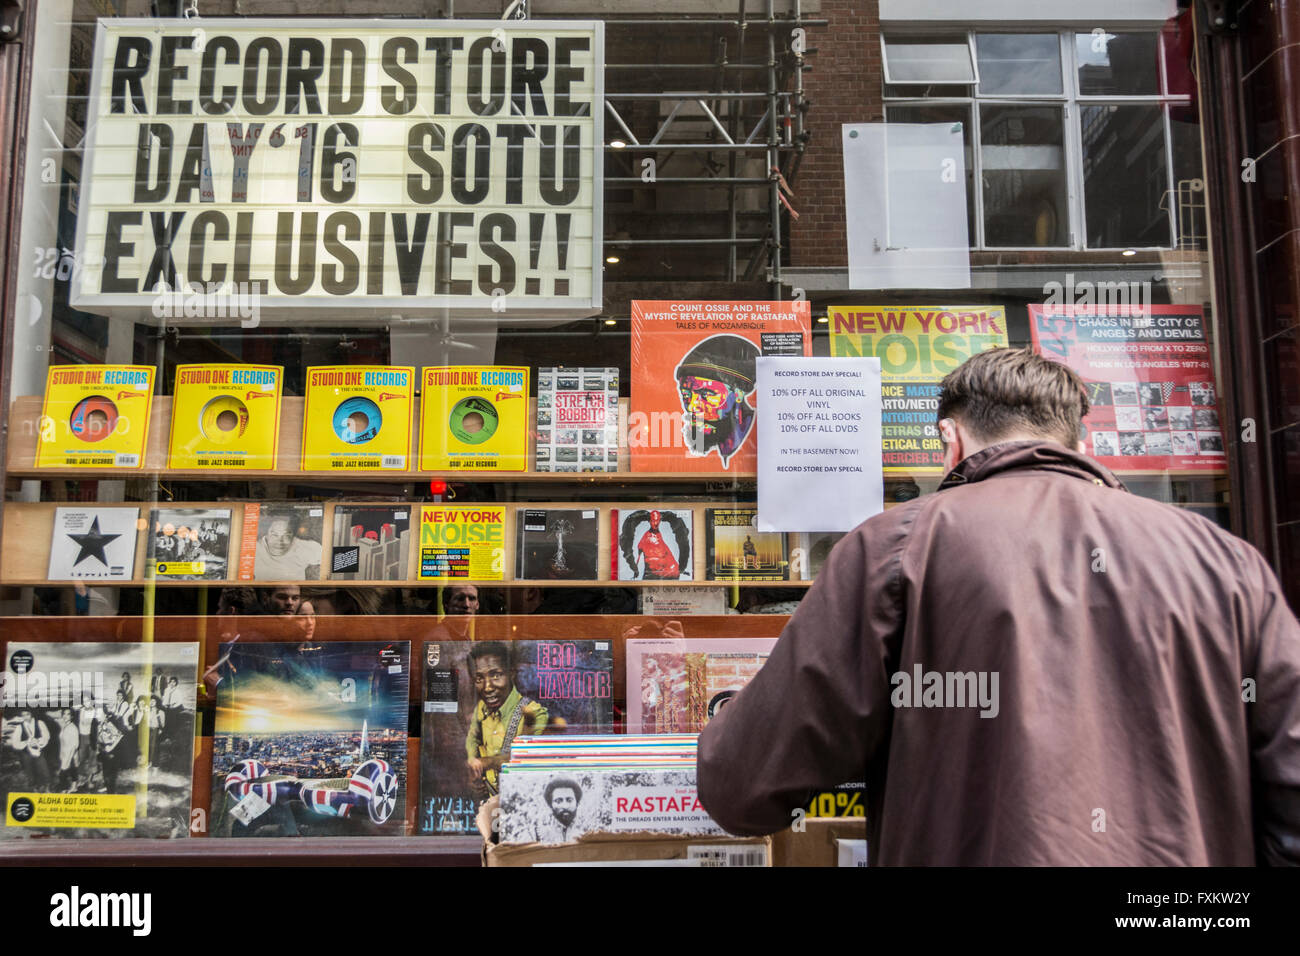 People shopping a Independent Record Store Day in Soho, Londra, Regno Unito. Immagini Stock